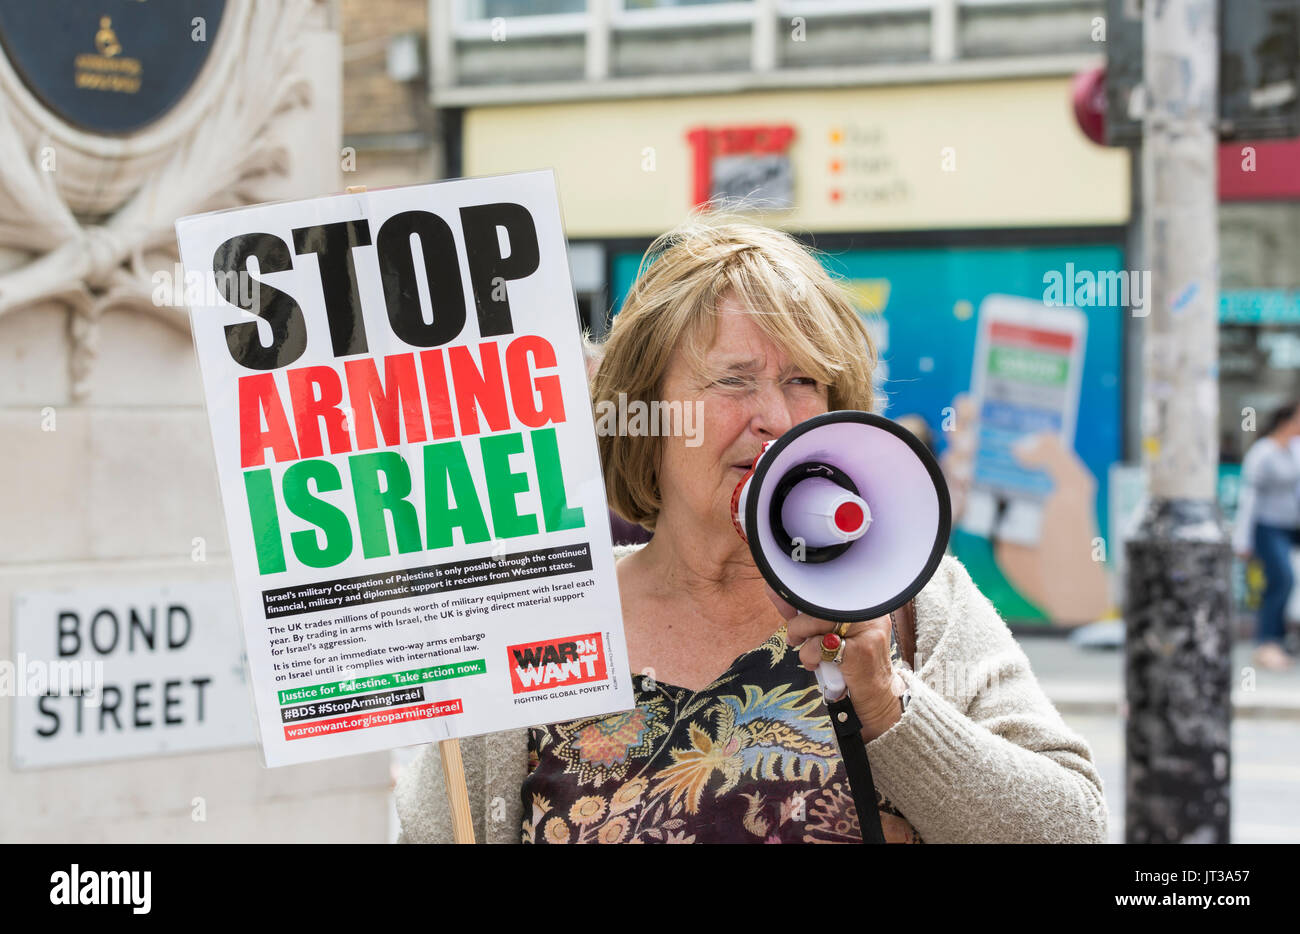 Woman protesting against the HSBC for allegedly helping to finance arms to Israel. - Stock Image